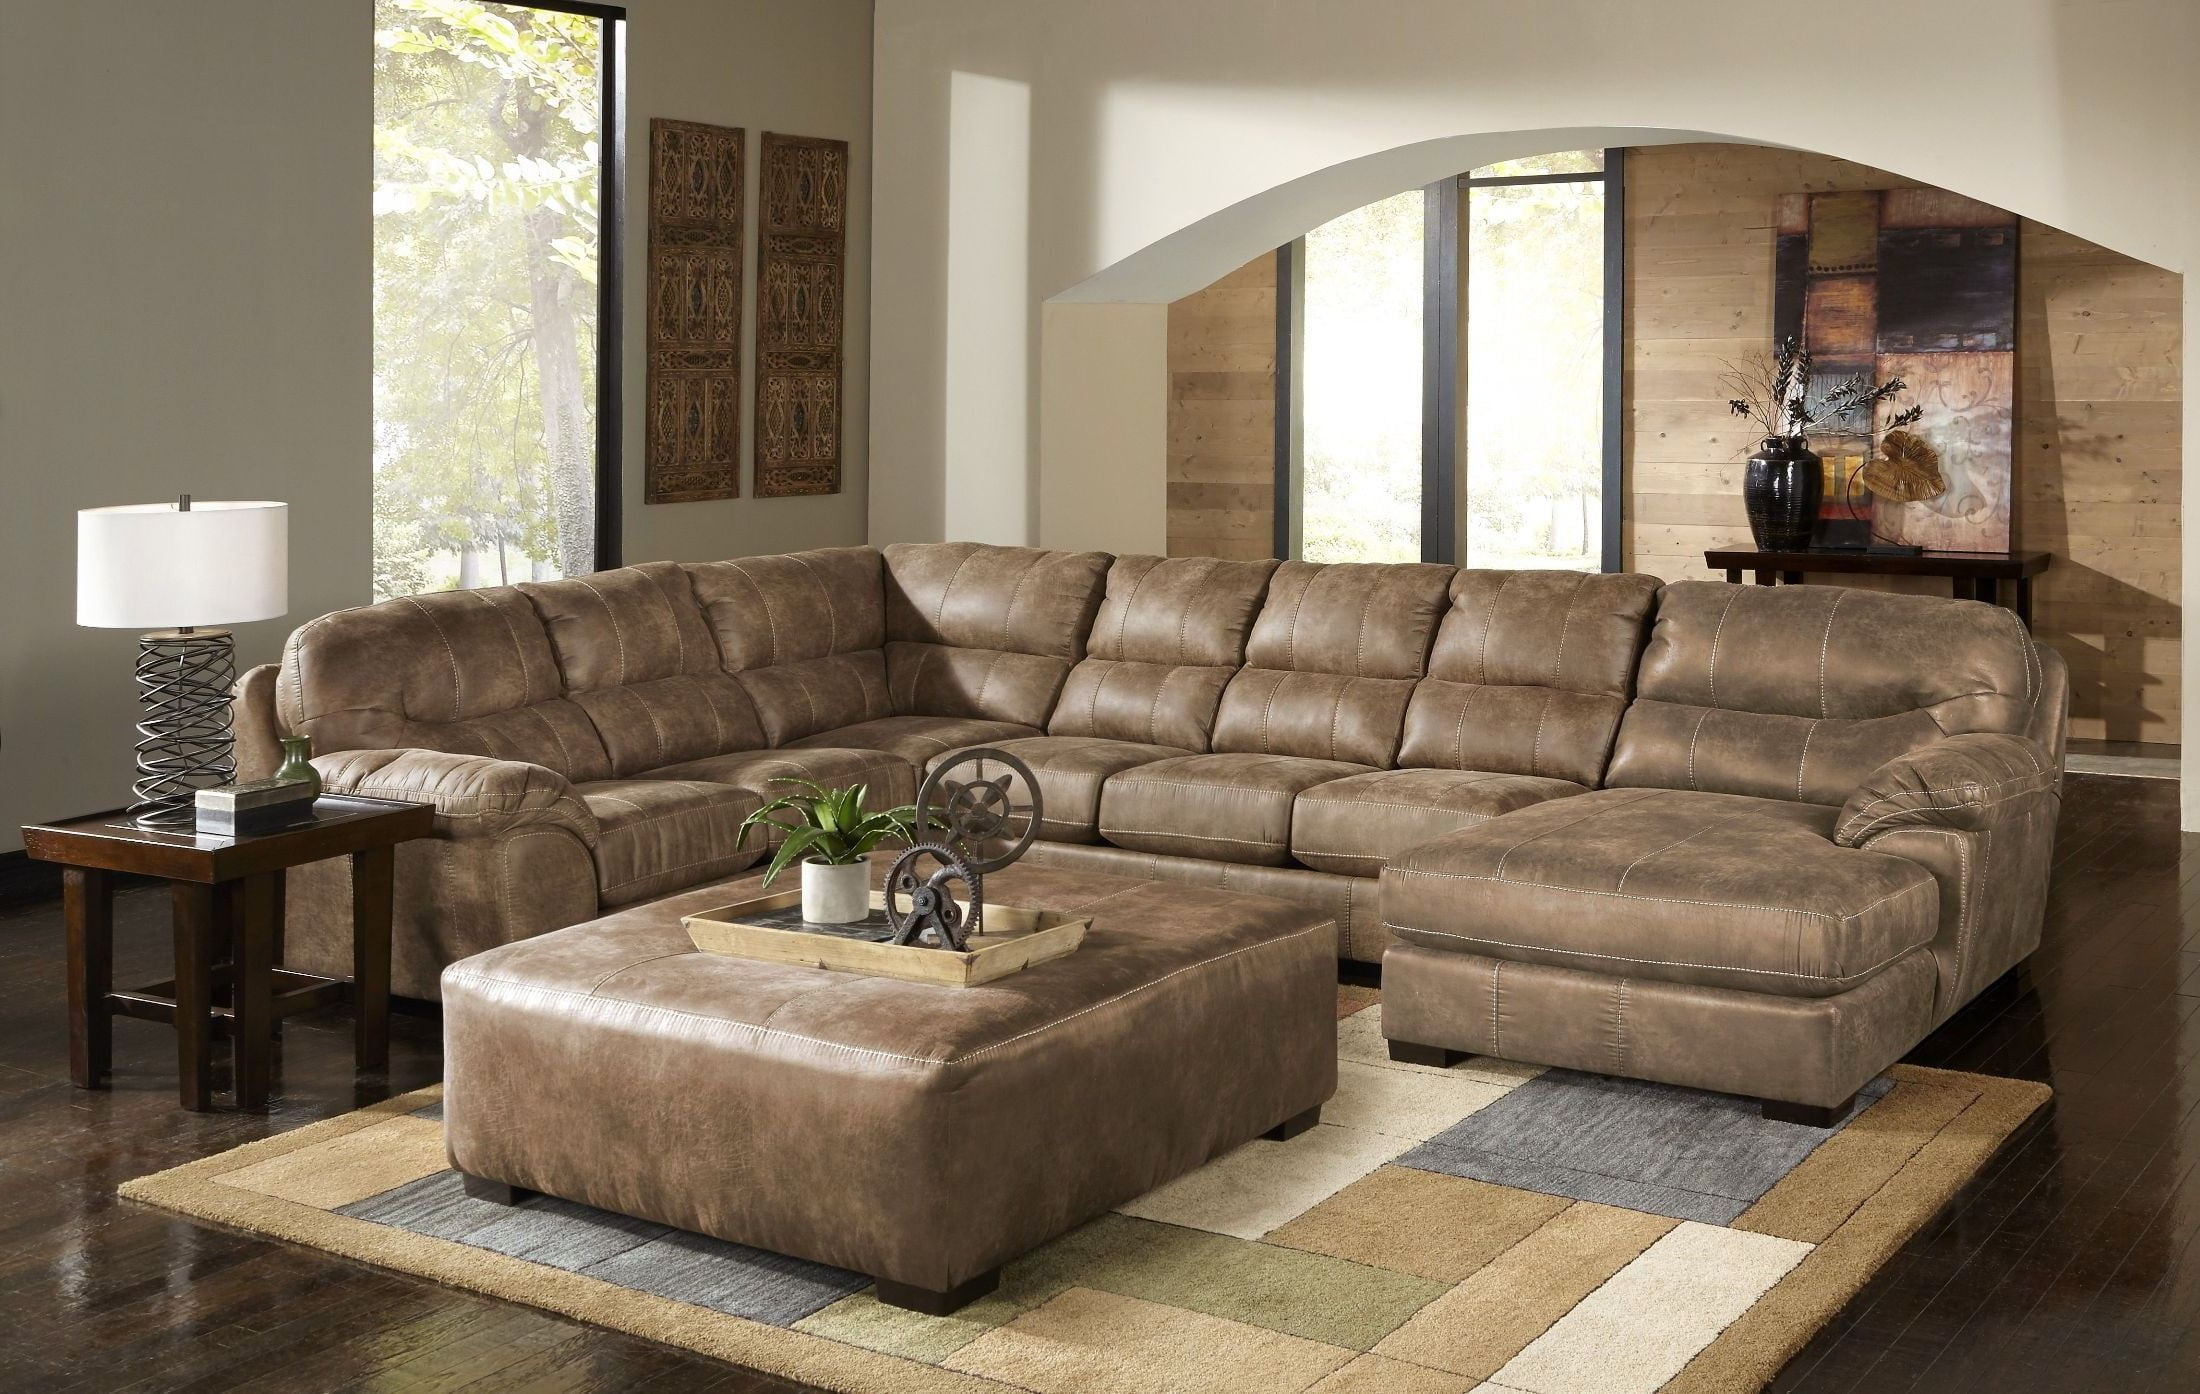 Avery 2 Piece Sectionals With Laf Armless Chaise Regarding Favorite Grant Silt Laf Chaise Sectional, 4453 75 122749302749, Jackson (View 8 of 20)